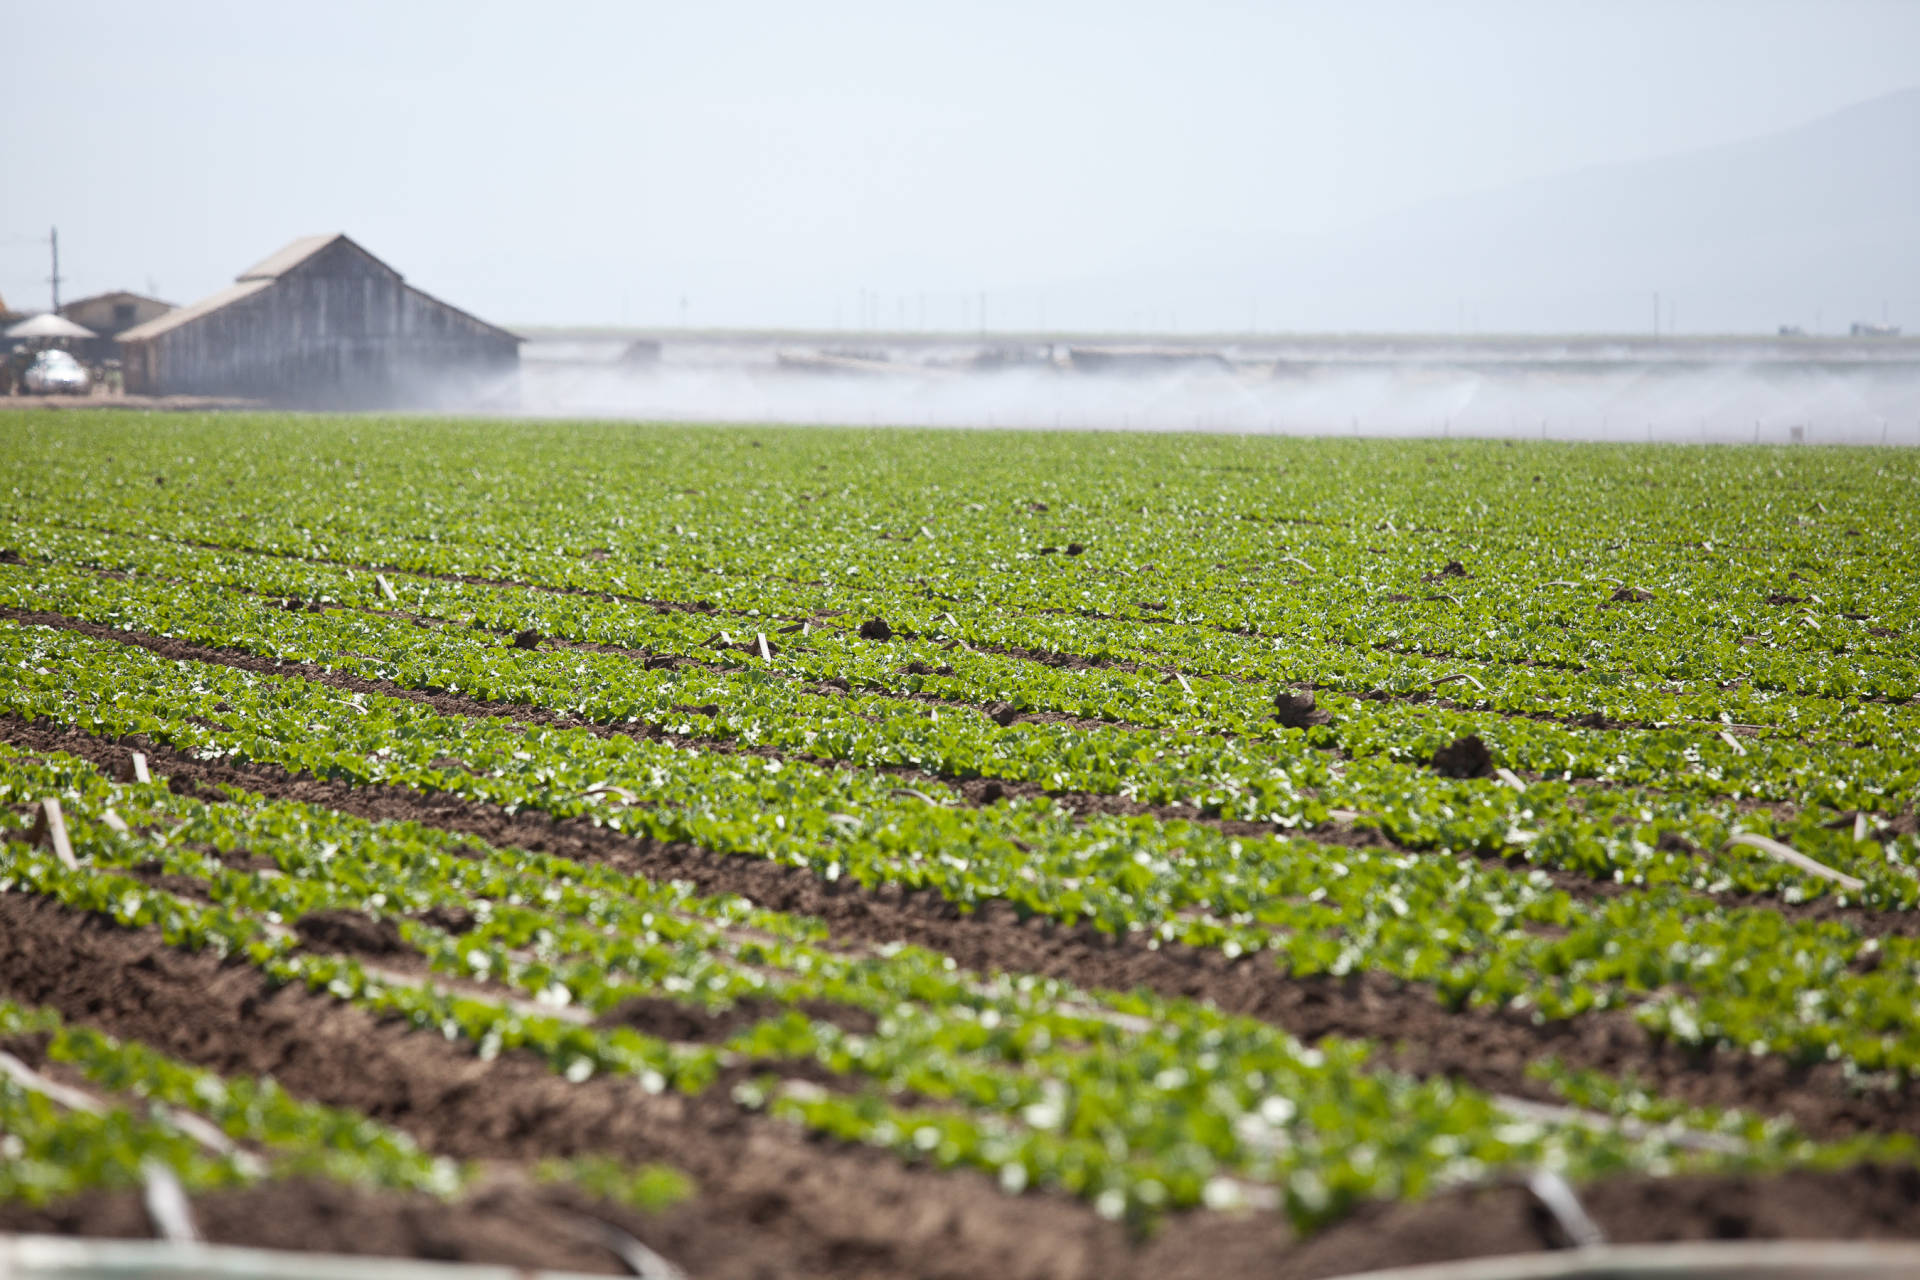 Farm fields in Salinas. Deborah Svoboda/KQED